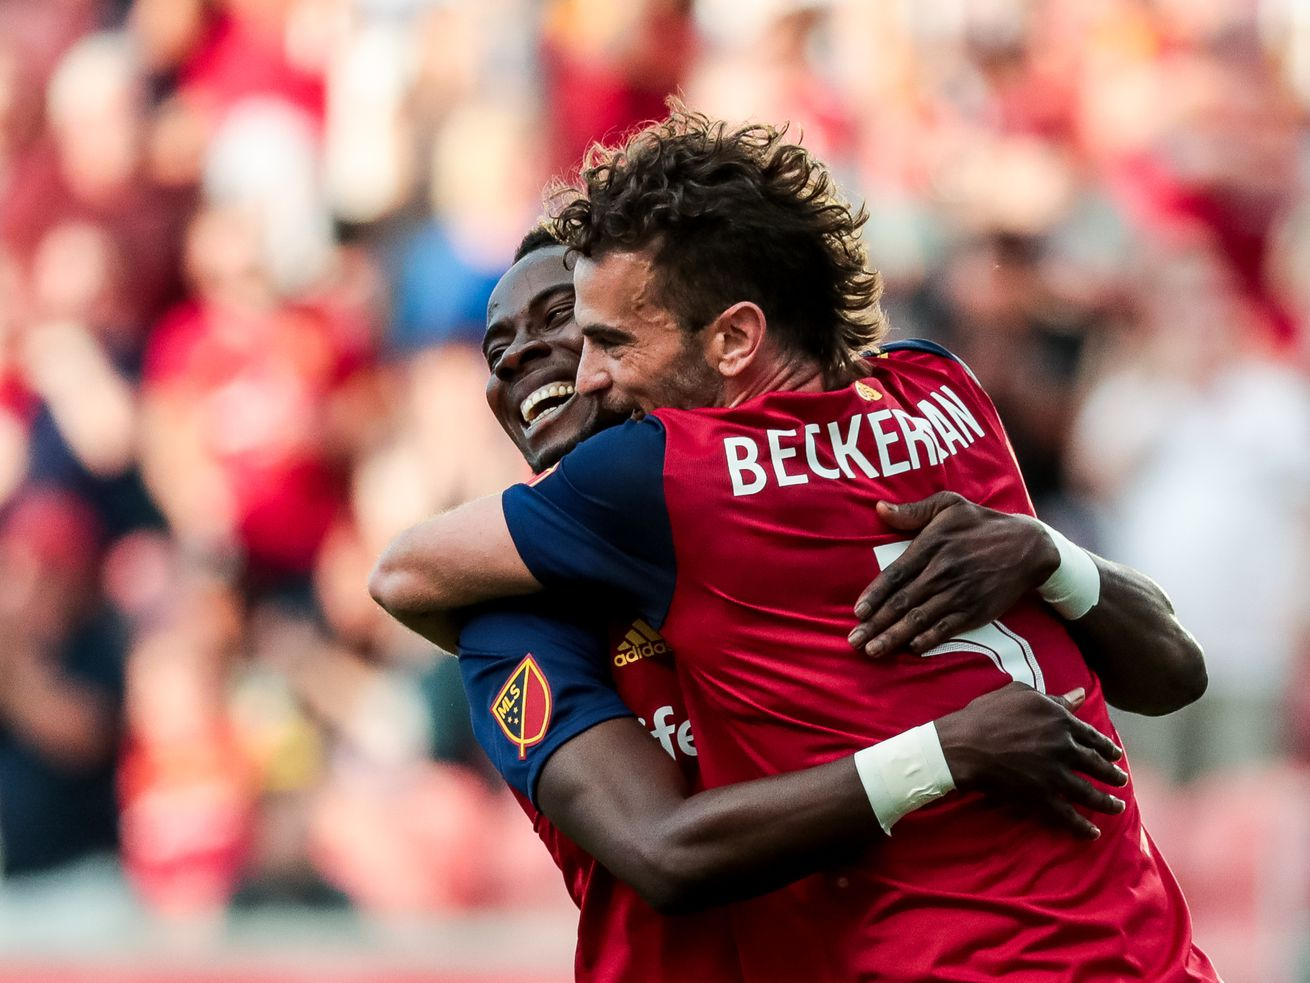 Captain Kyle is back! Kyle Beckerman returning to Real Salt Lake for his 14th season